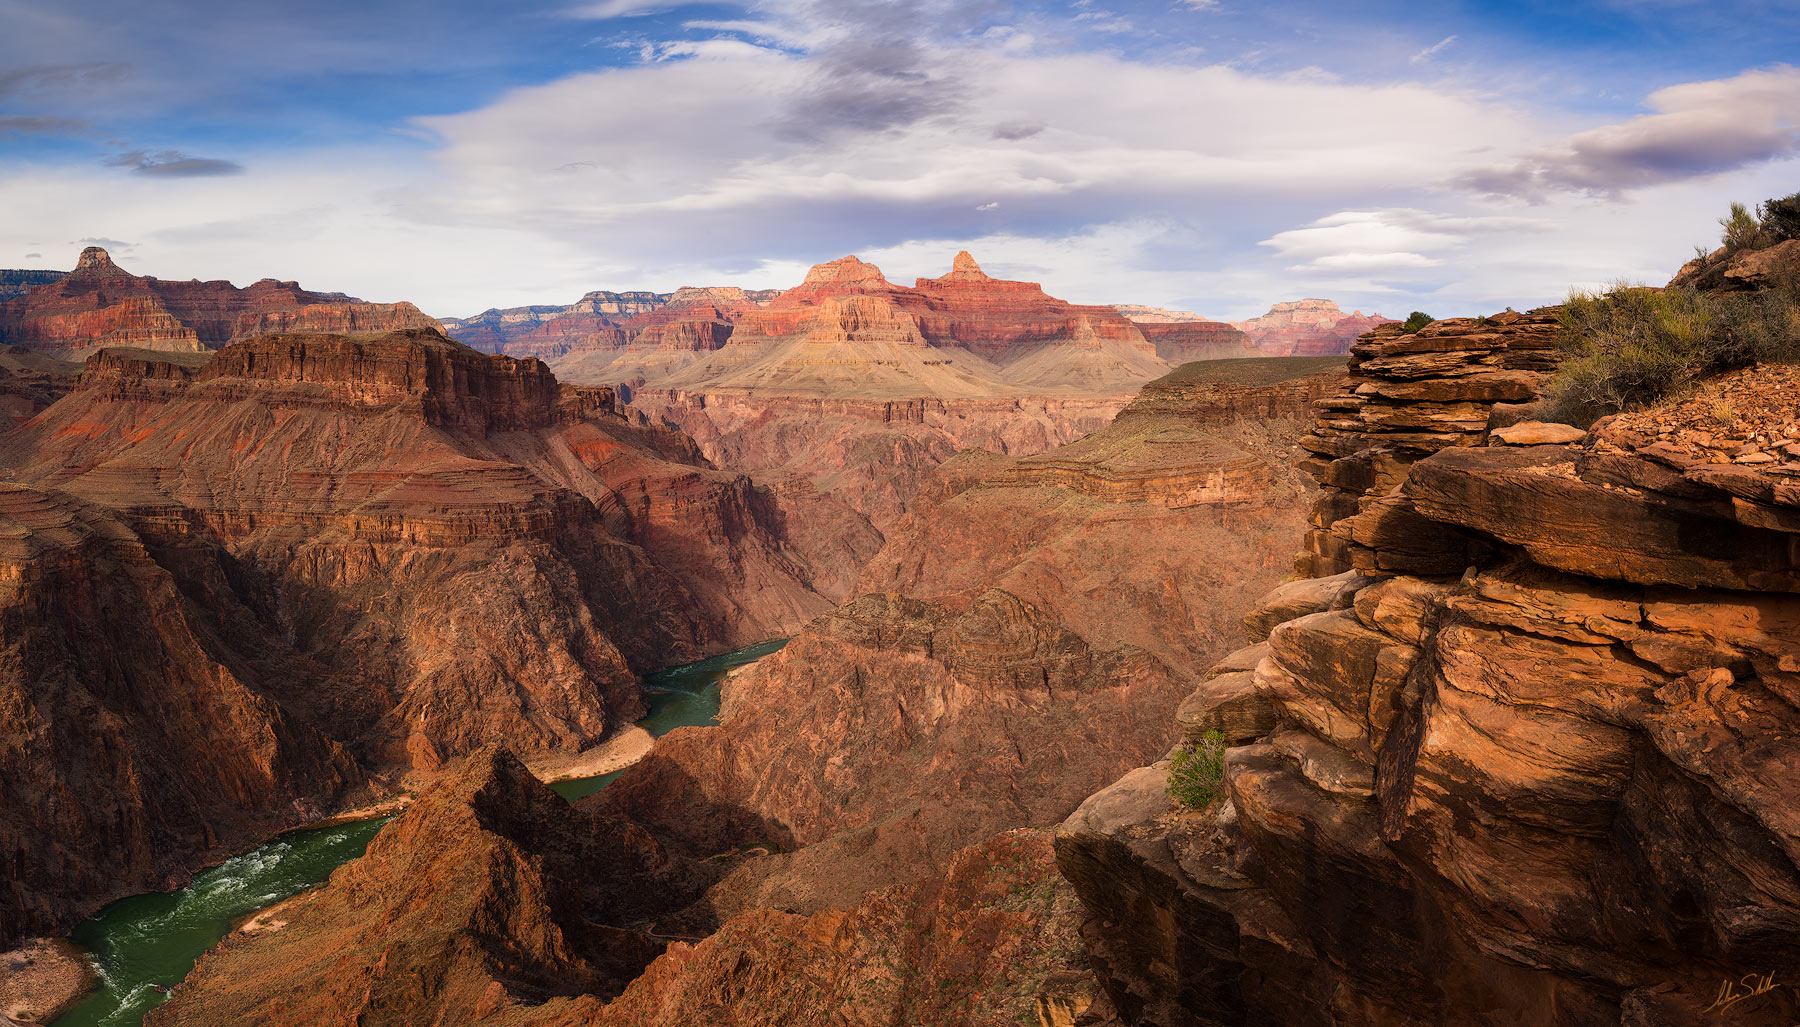 Grand Canyon, National Park, Plateau Point, Colorado River, Below the Rim, Arizona, Inner Gorge, Granite Gorge, photo